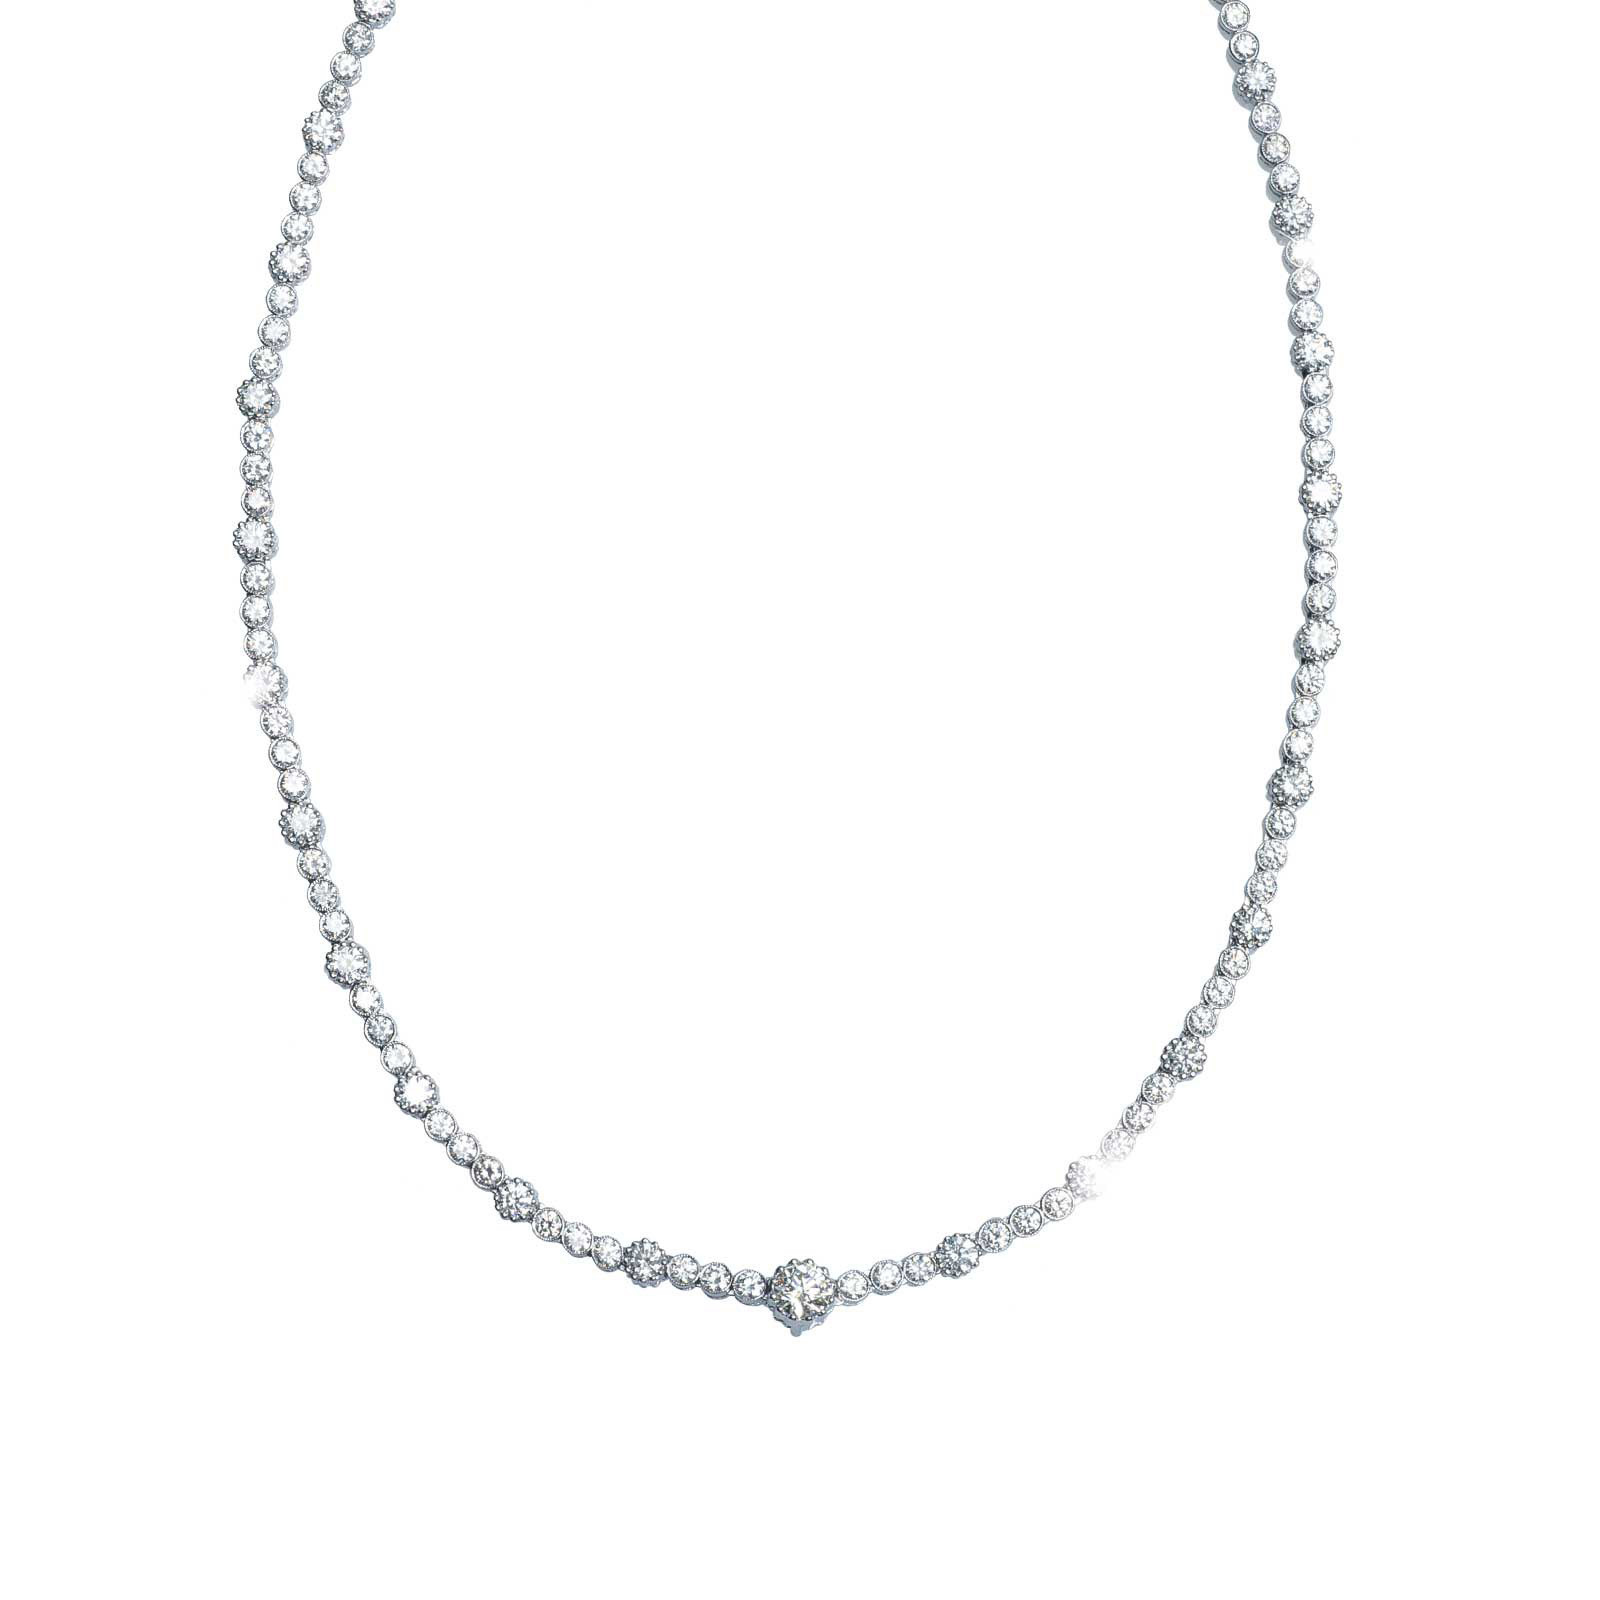 New 11.22 CTW Diamond Tennis Necklace